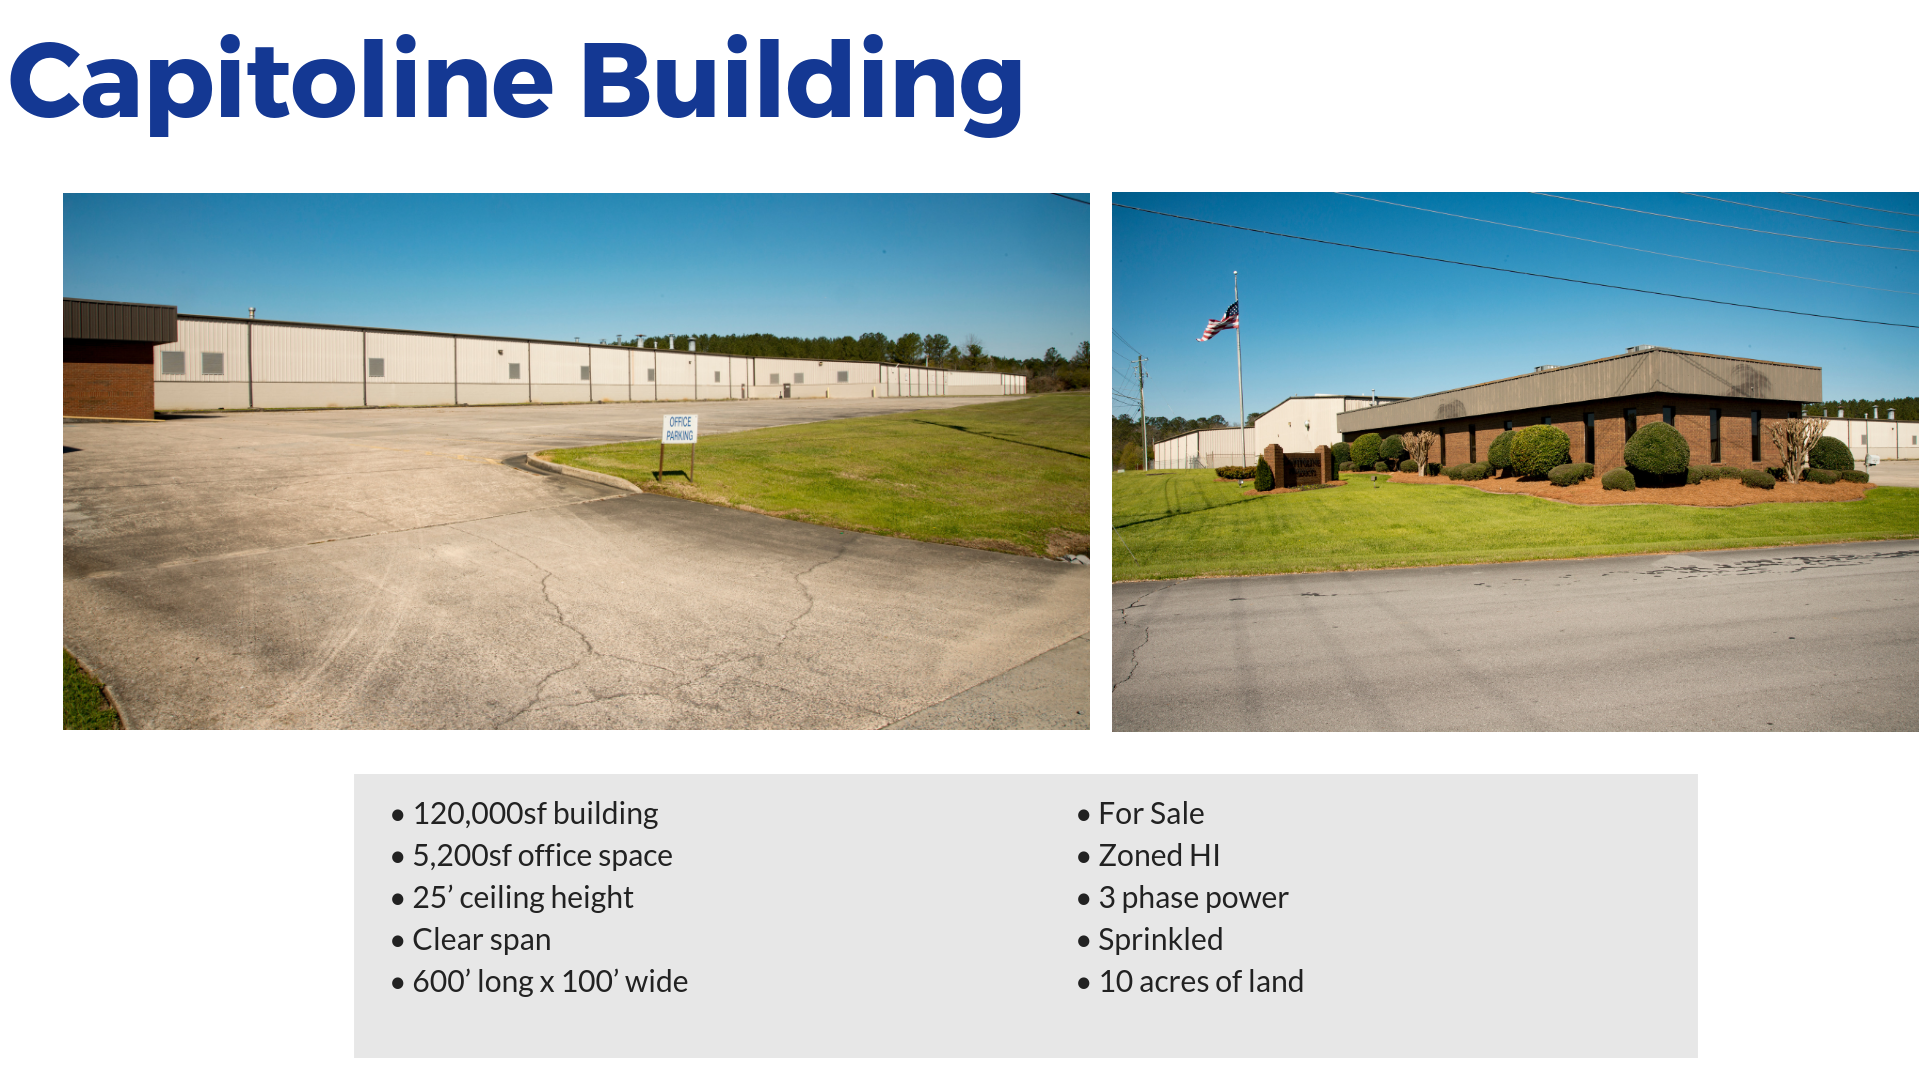 Capitoline Building Available buildings in Rome and Floyd County Georgia